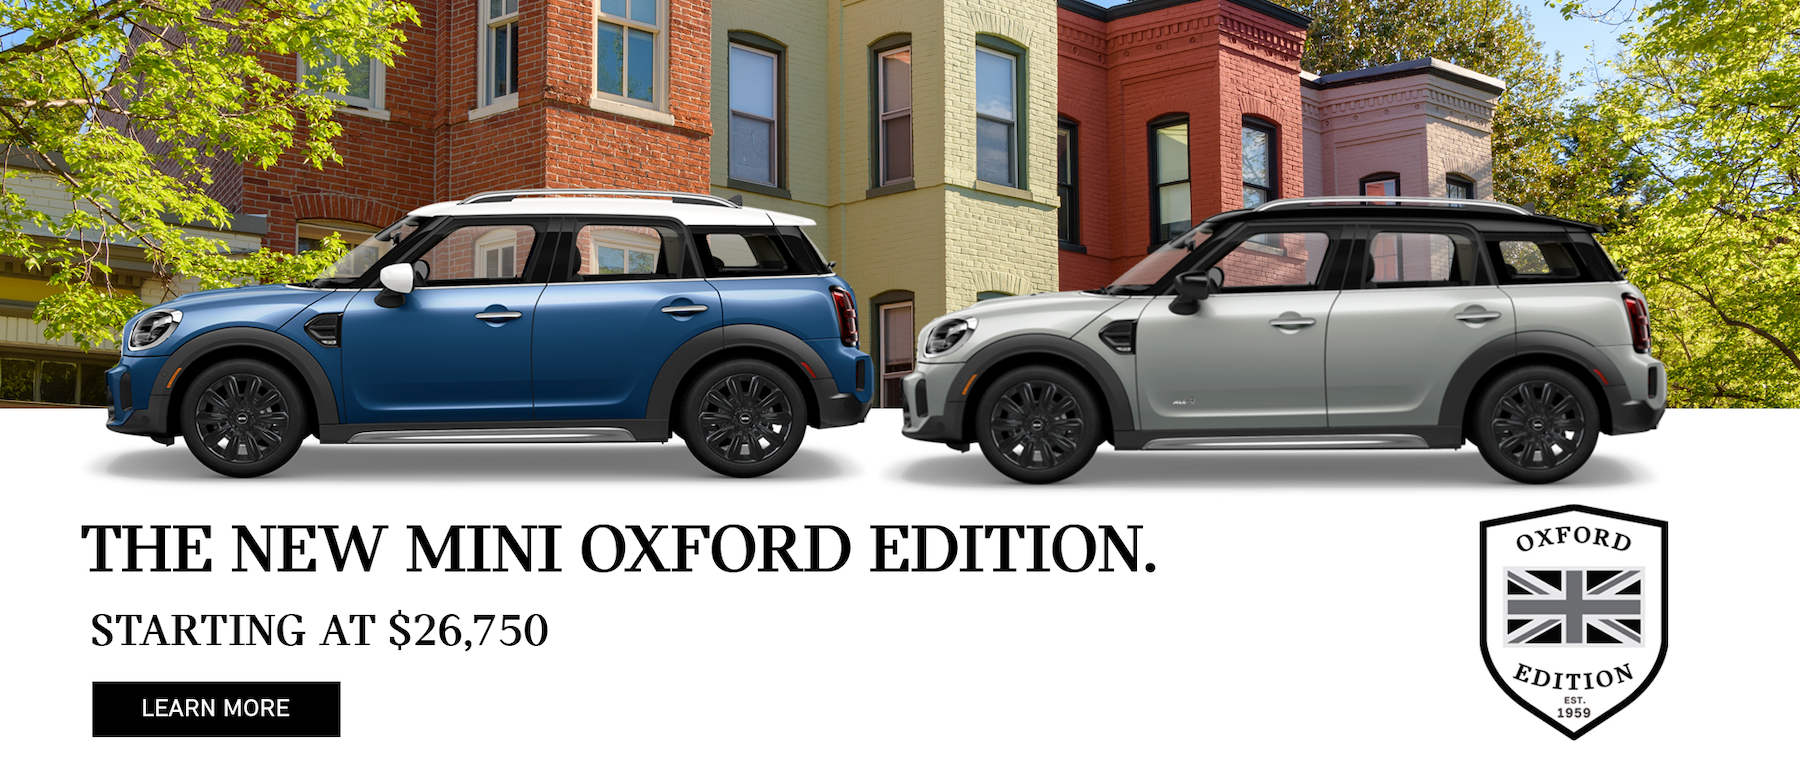 MINI Oxford Edition Banner for Website